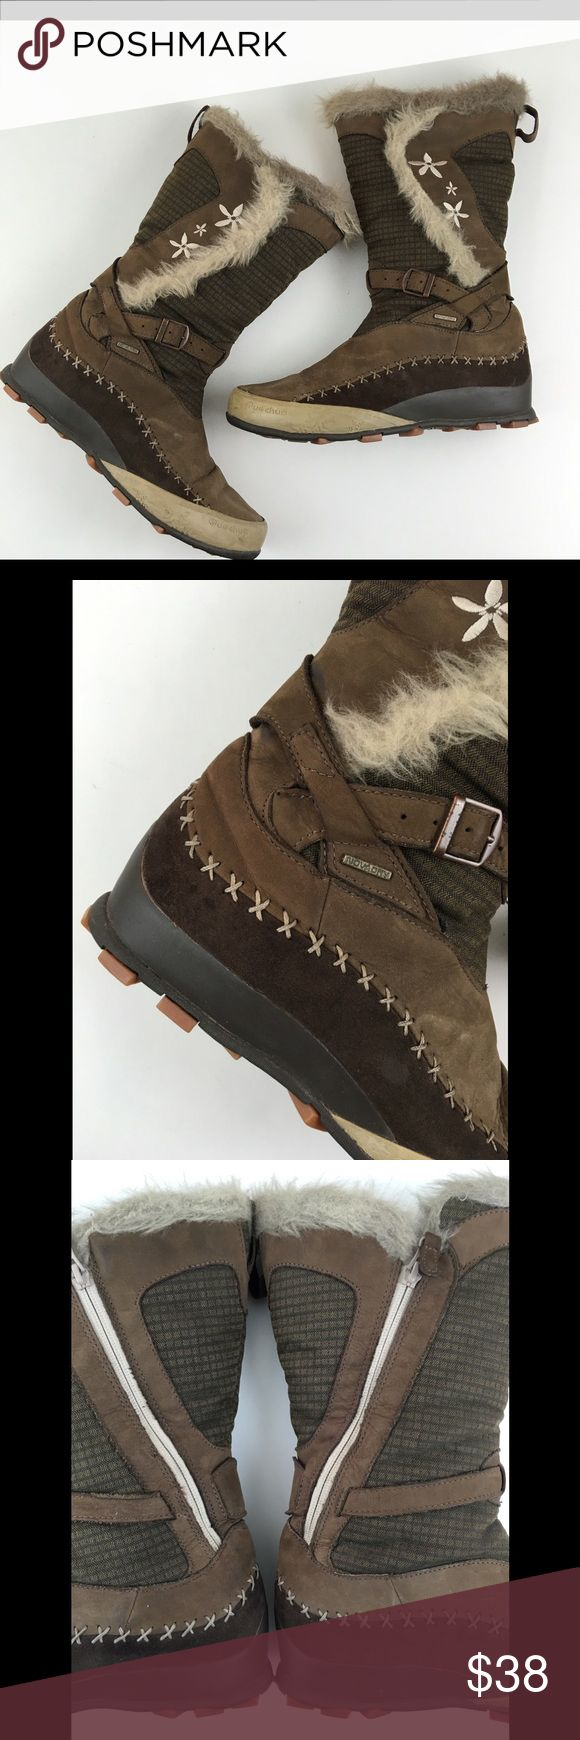 """Quechua Stratermic Brown Snow Winter Boots Join us on Instagram ➡️ FashionCents203 every Friday starting 11/17 for outfits of the day featuring items from our closet   Quechua Stratermic Women's Brown Snow Winter Boots Size US 8 1/2 & EU 41  Measures 12"""" tall  In overall good condition- no holes, rips or major stains but does have minor signs of wear in the fabric and faux fur trim  The rubber soles are in great condition   Check out our other listings & bundle your likes so we can send you…"""